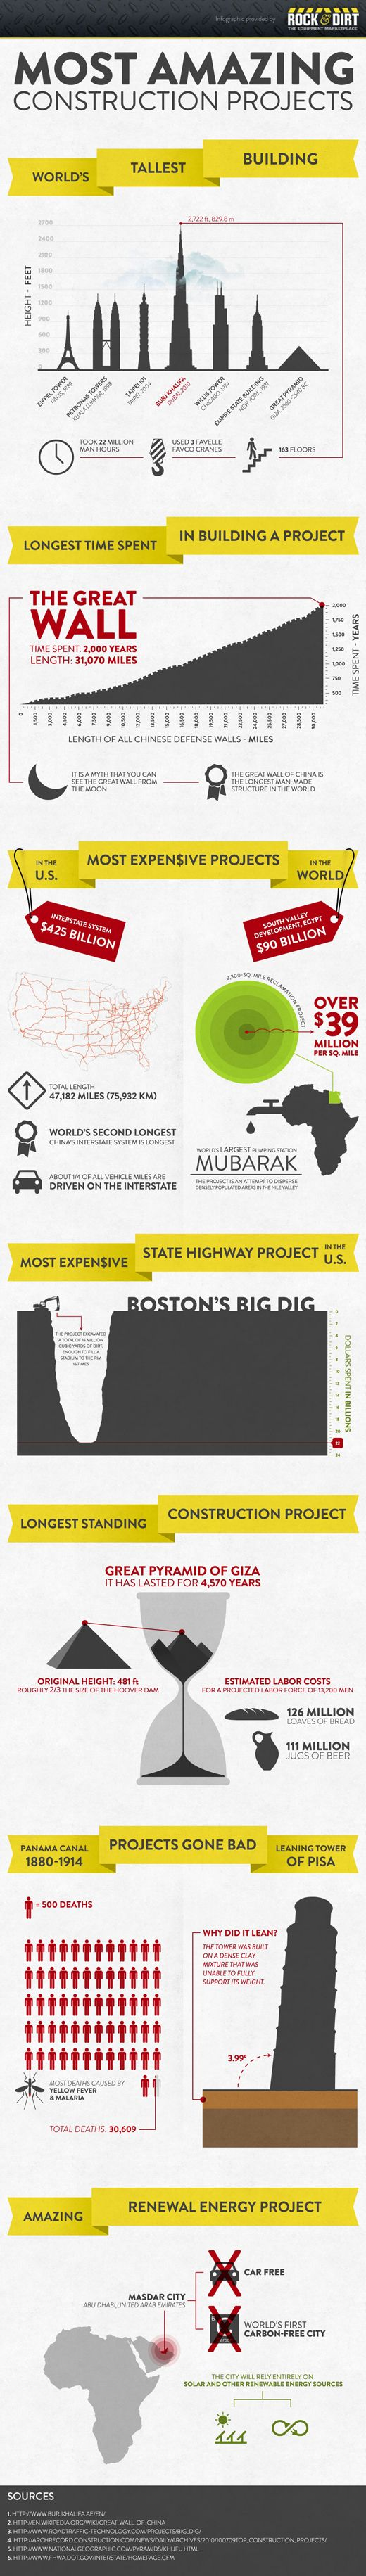 World's Most Amazing Construction Projects #project #management  #infographic